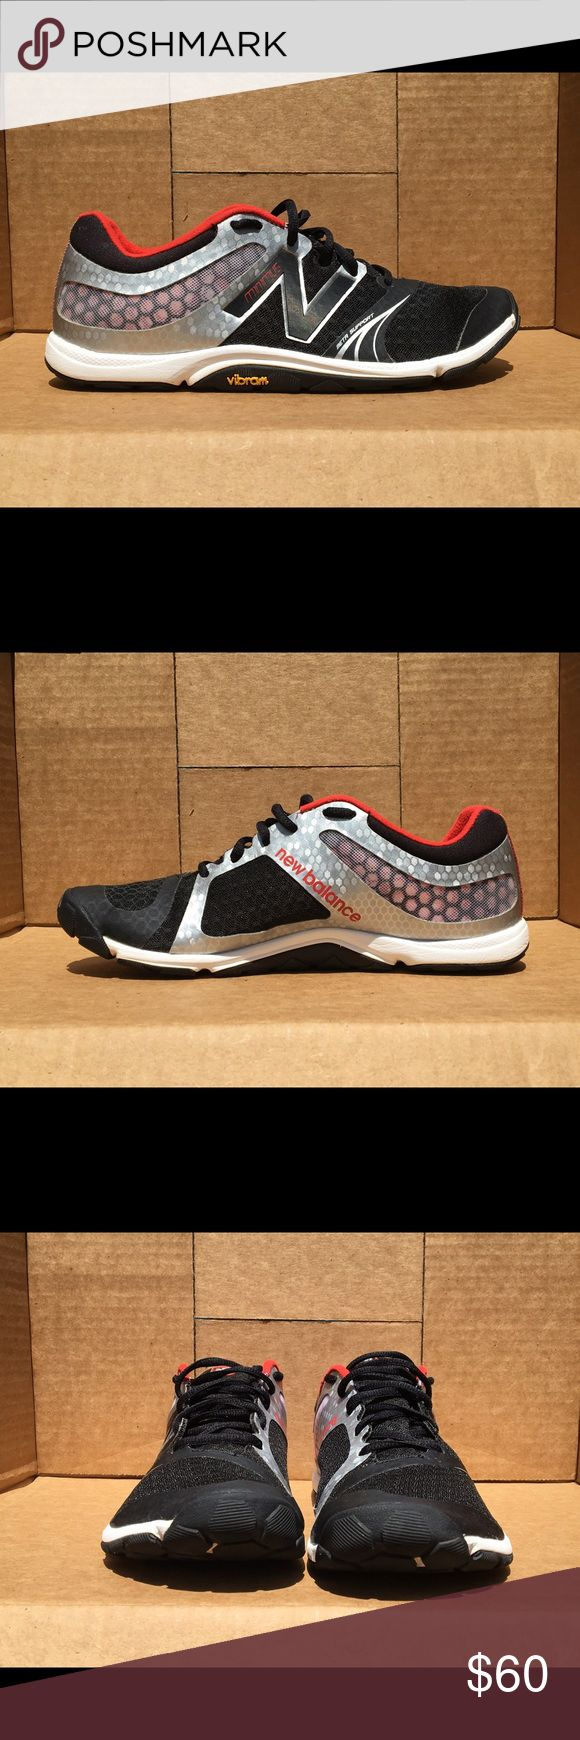 New Balance Minimus Size 9.5 Great used condition. New Balance Shoes Sneakers